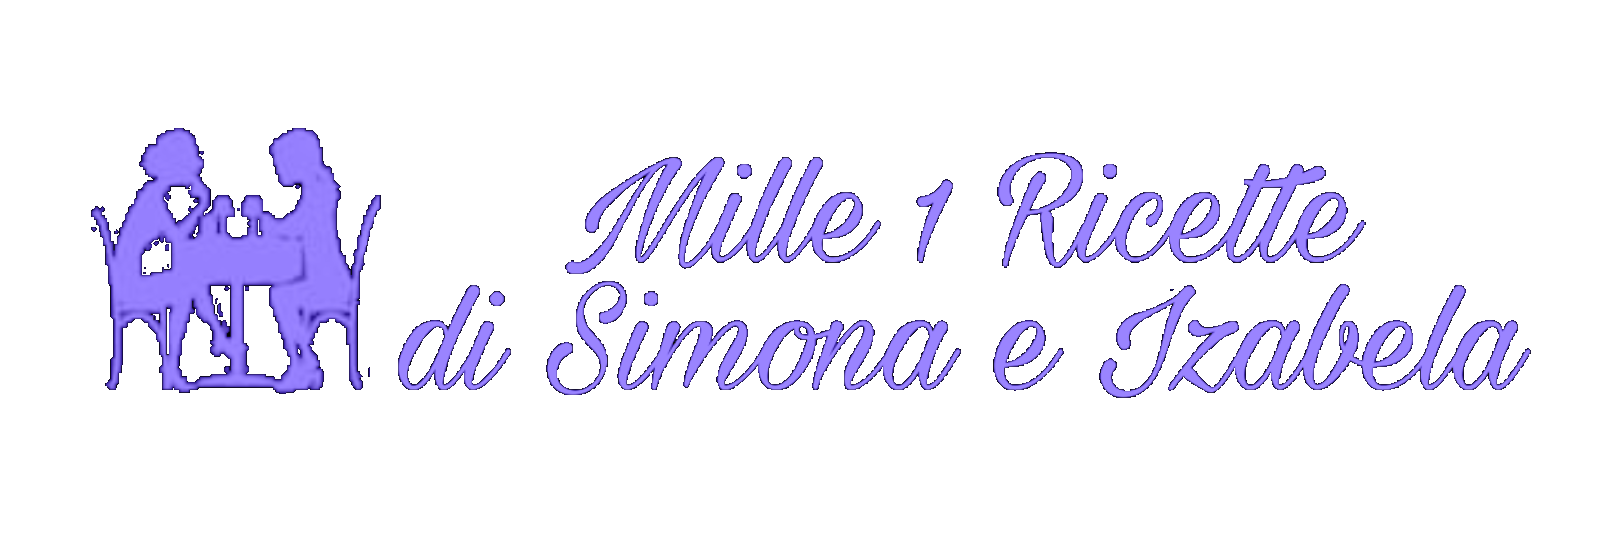 Mille 1 Ricette